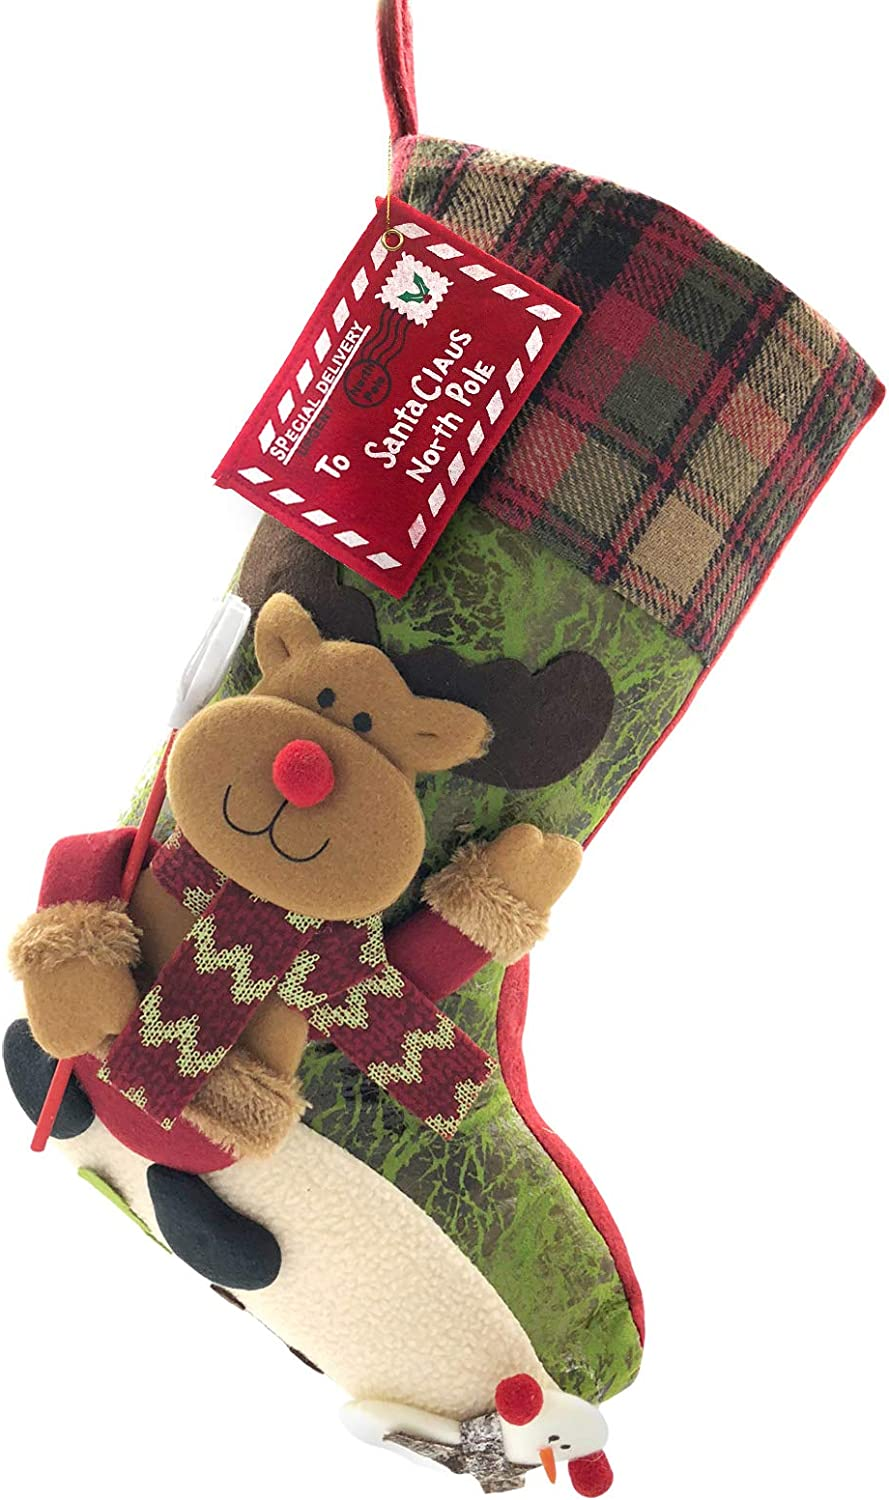 ETERAMUS 21 inch Plaid Christmas Stockings One Piece, Felt Large Plush 3D Reindeer Snowman Design Hanging Bags, Socks - Holiday Girls Boys Gift Party Decorations for Decor Xmas Tree,Mantel (Green)